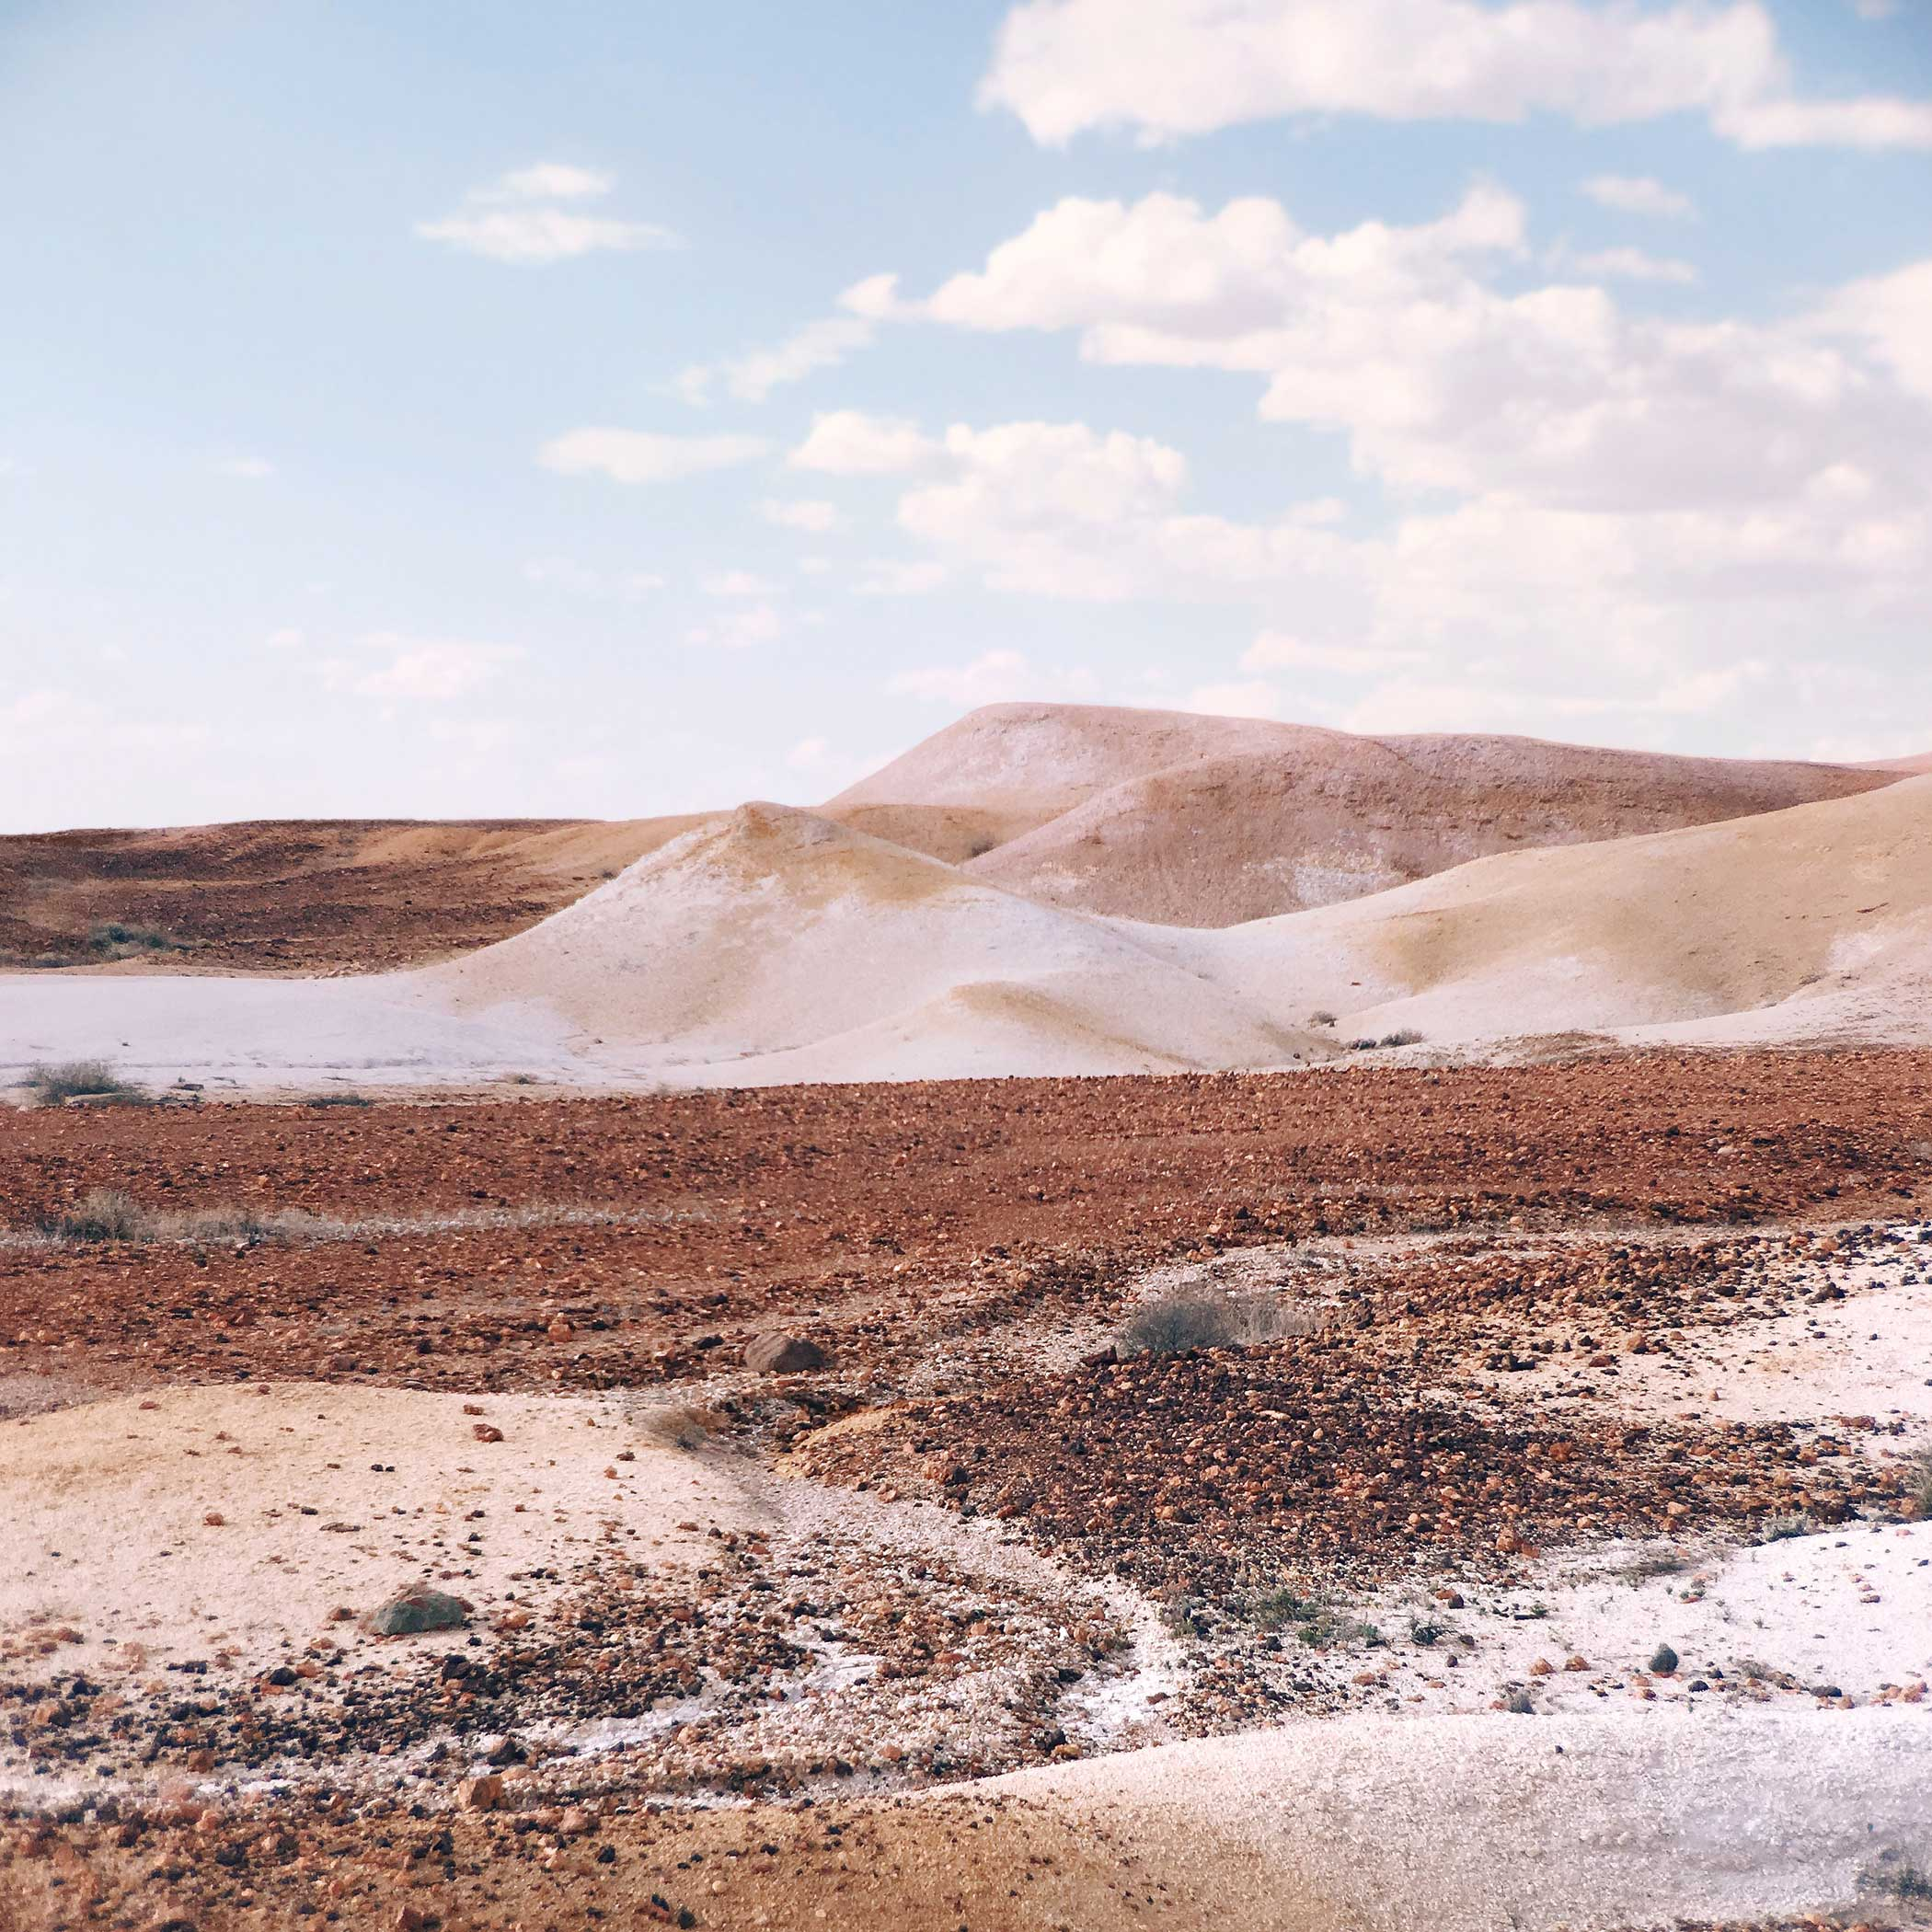 To create Songlines, Emma Phillips explores the Australian desert until she finds a striking view. Then she uses an iPhone 6s to shoot the scene with an Olloclip Active Lens.